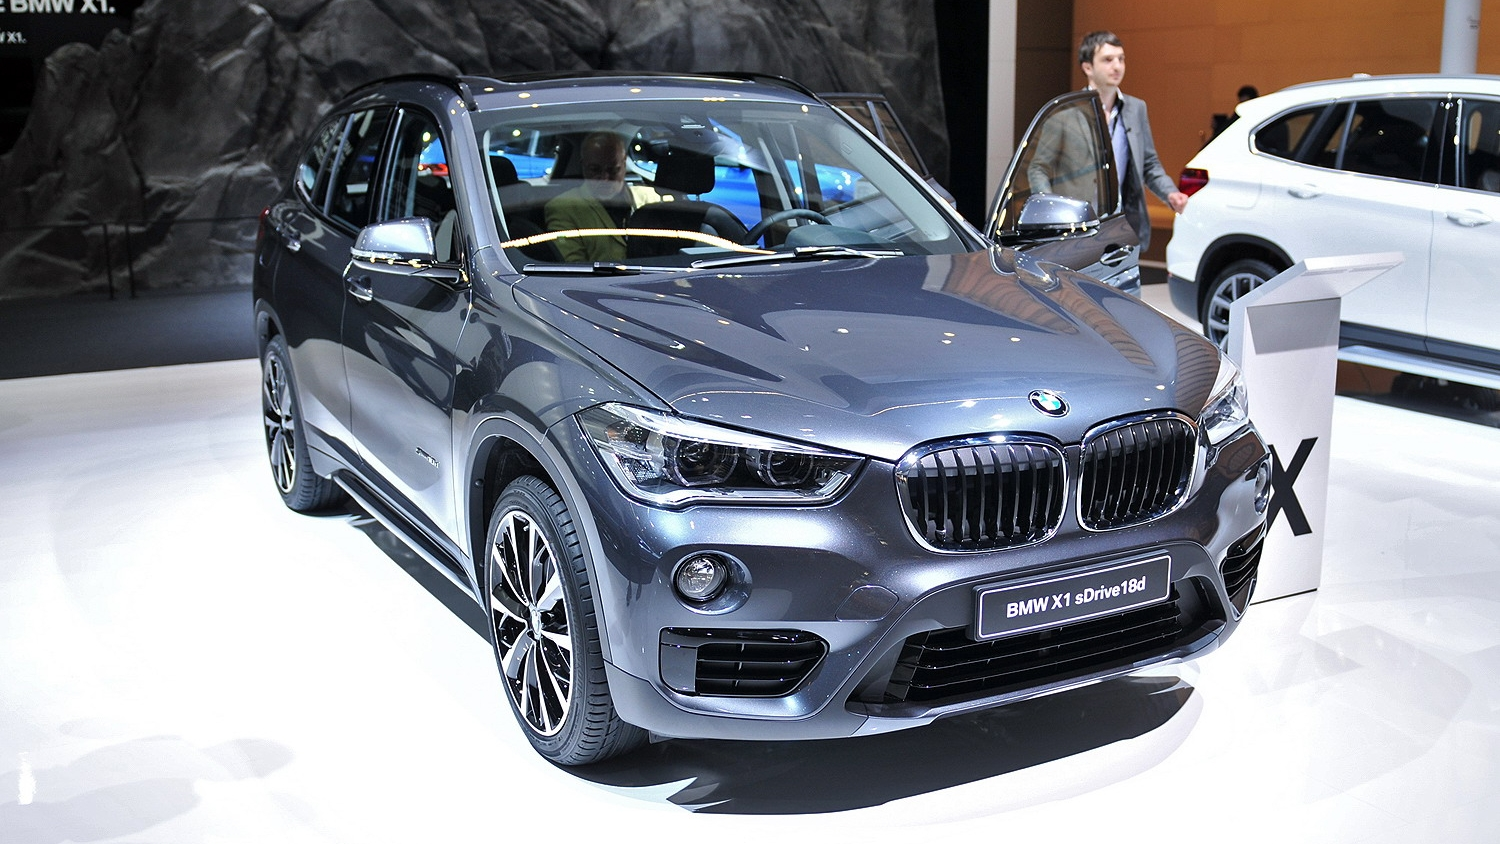 BMW X1 News And Reviews